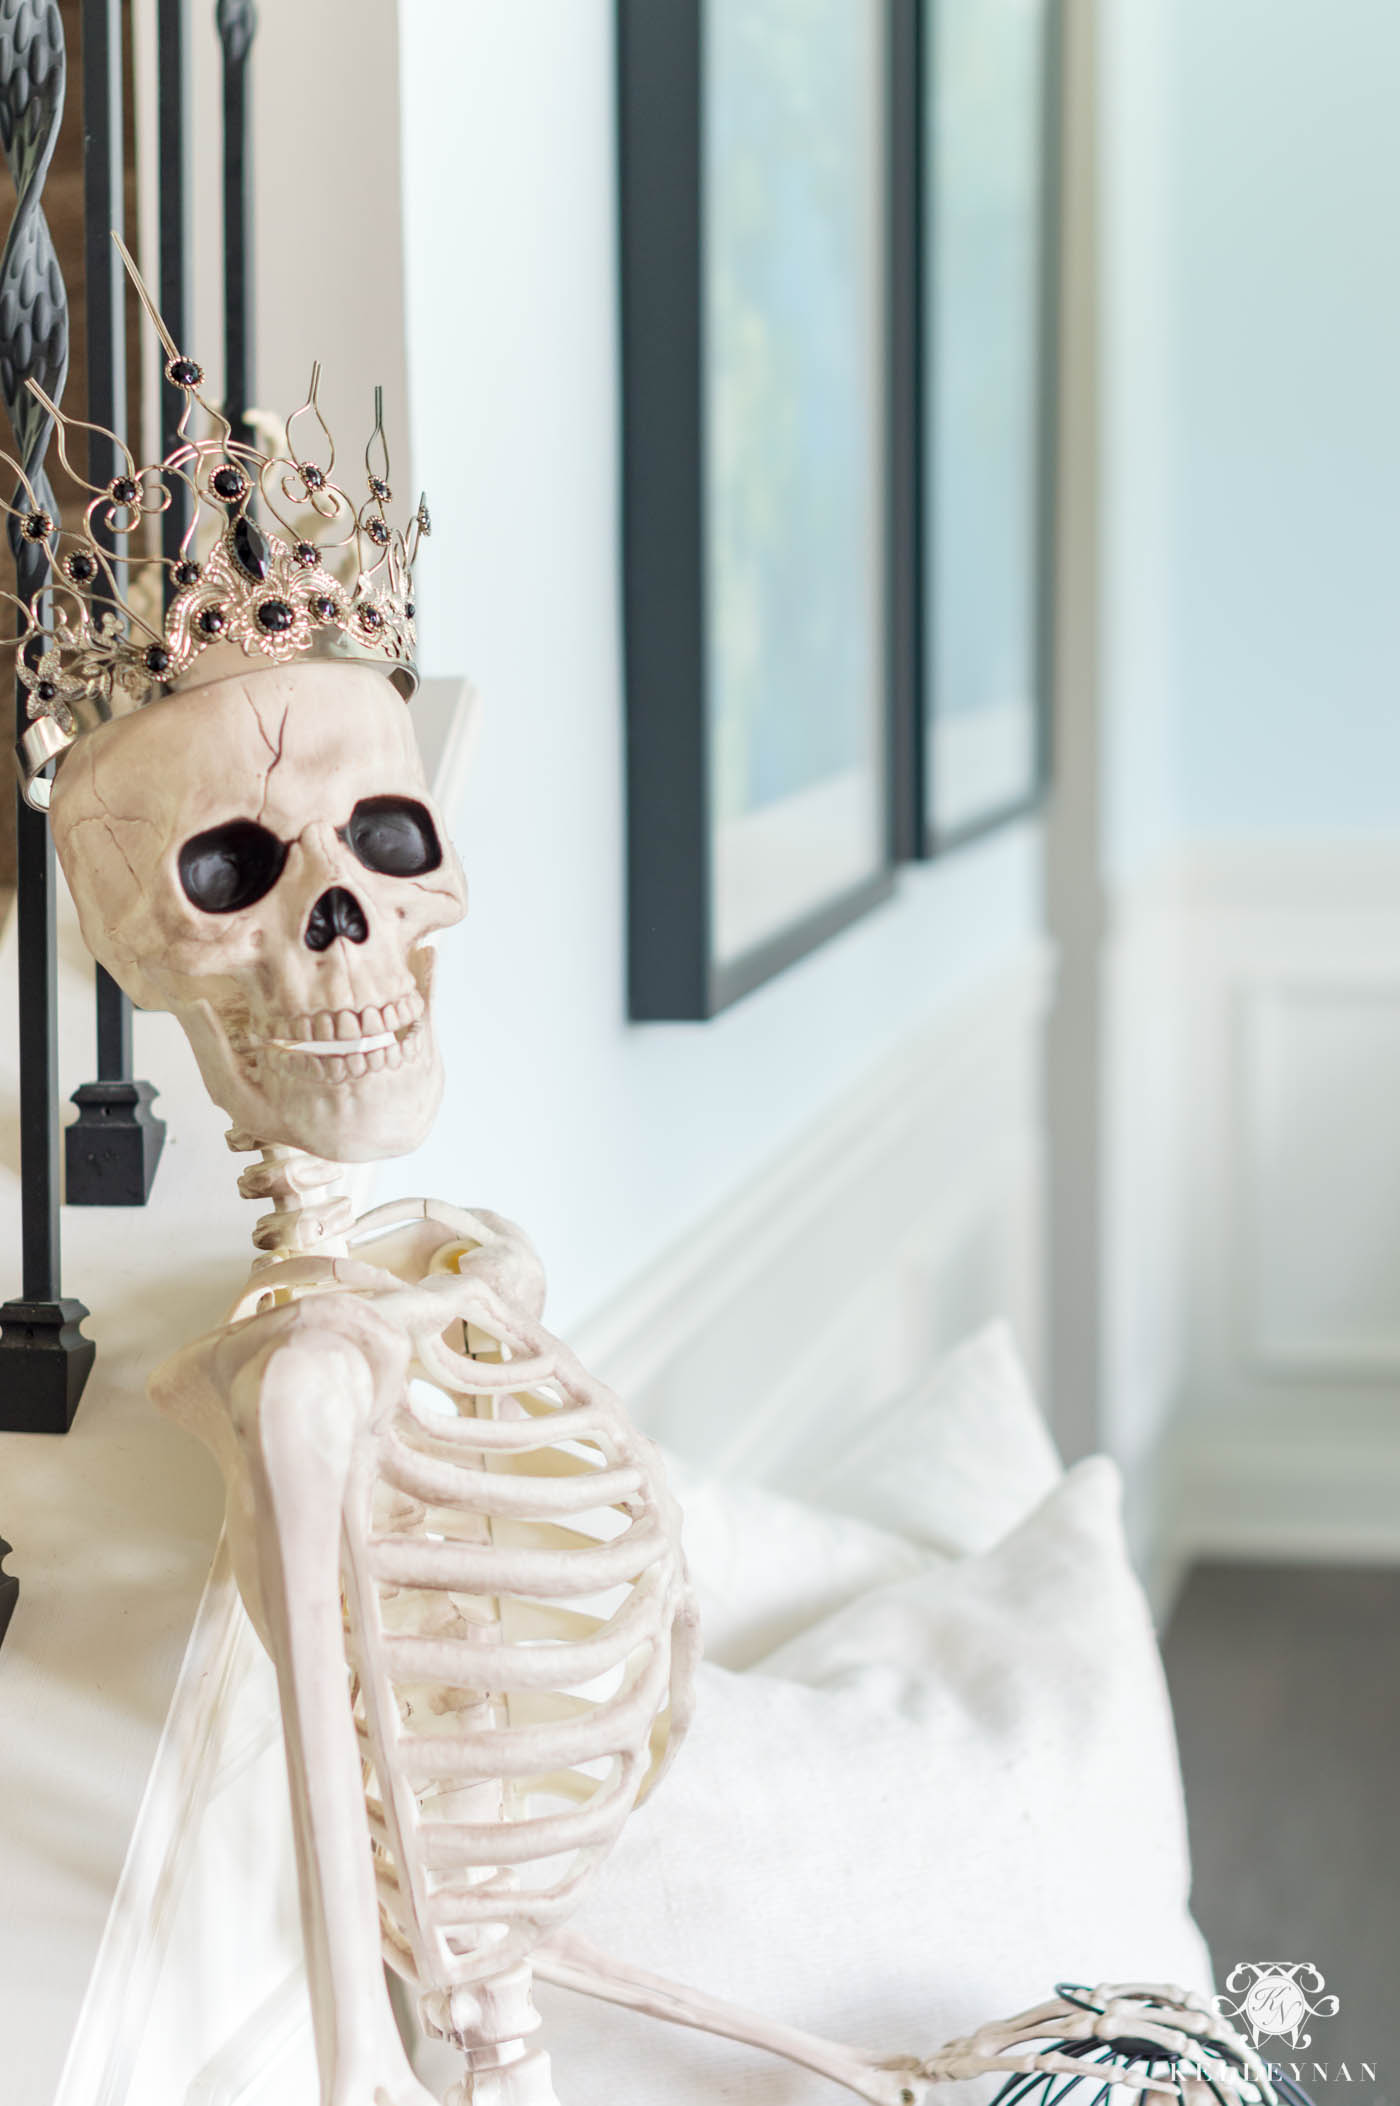 Royal Skeleton with Crown in the Home Entry